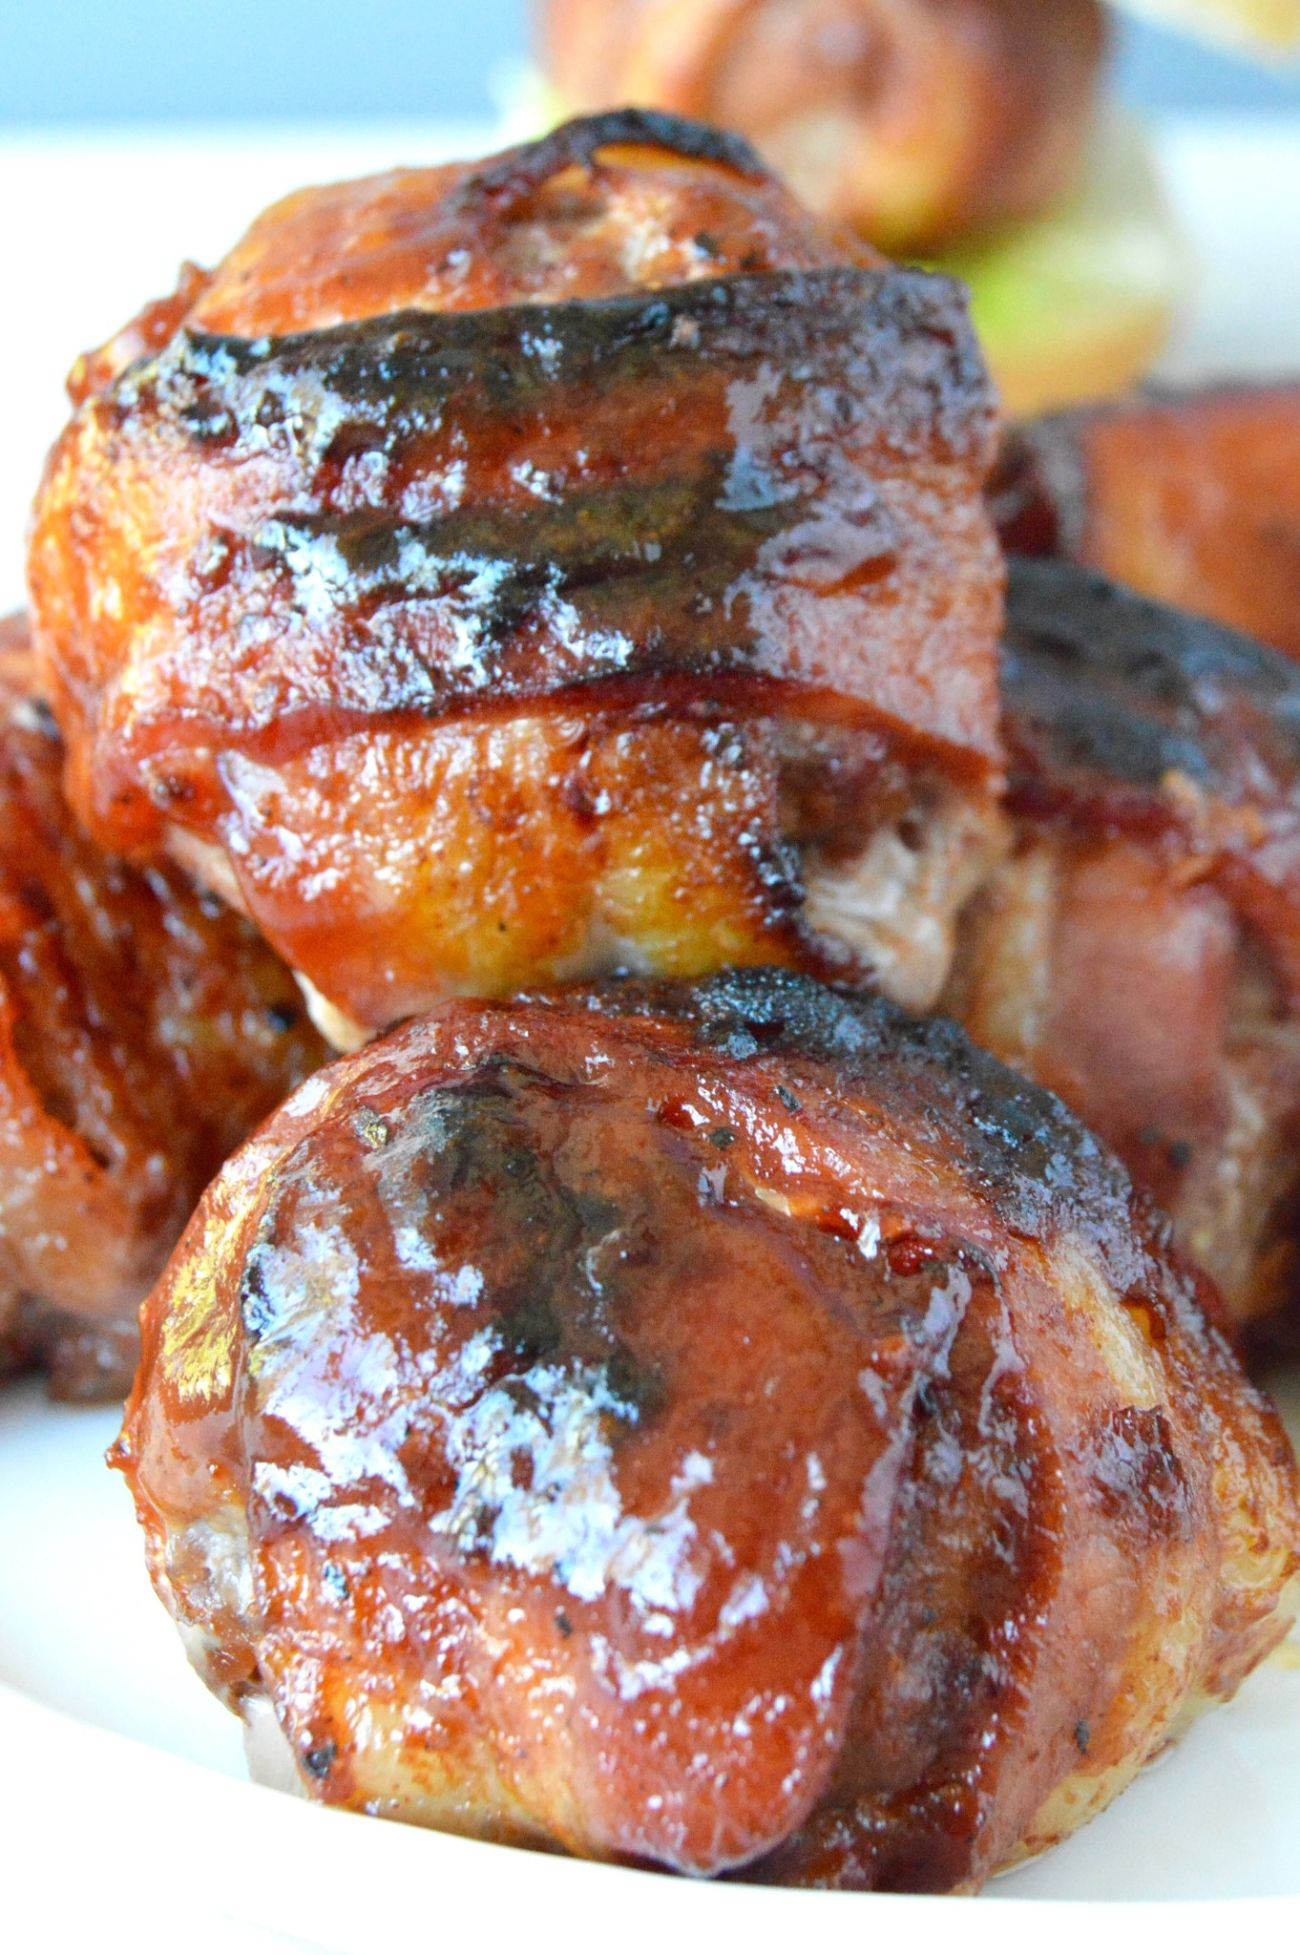 This BBQ Bacon Meatball Slider recipe is sure to he a hit! Juicy meatballs, wrapped in bacon brushed with BBQ sauce are the stars of this delicious slider!